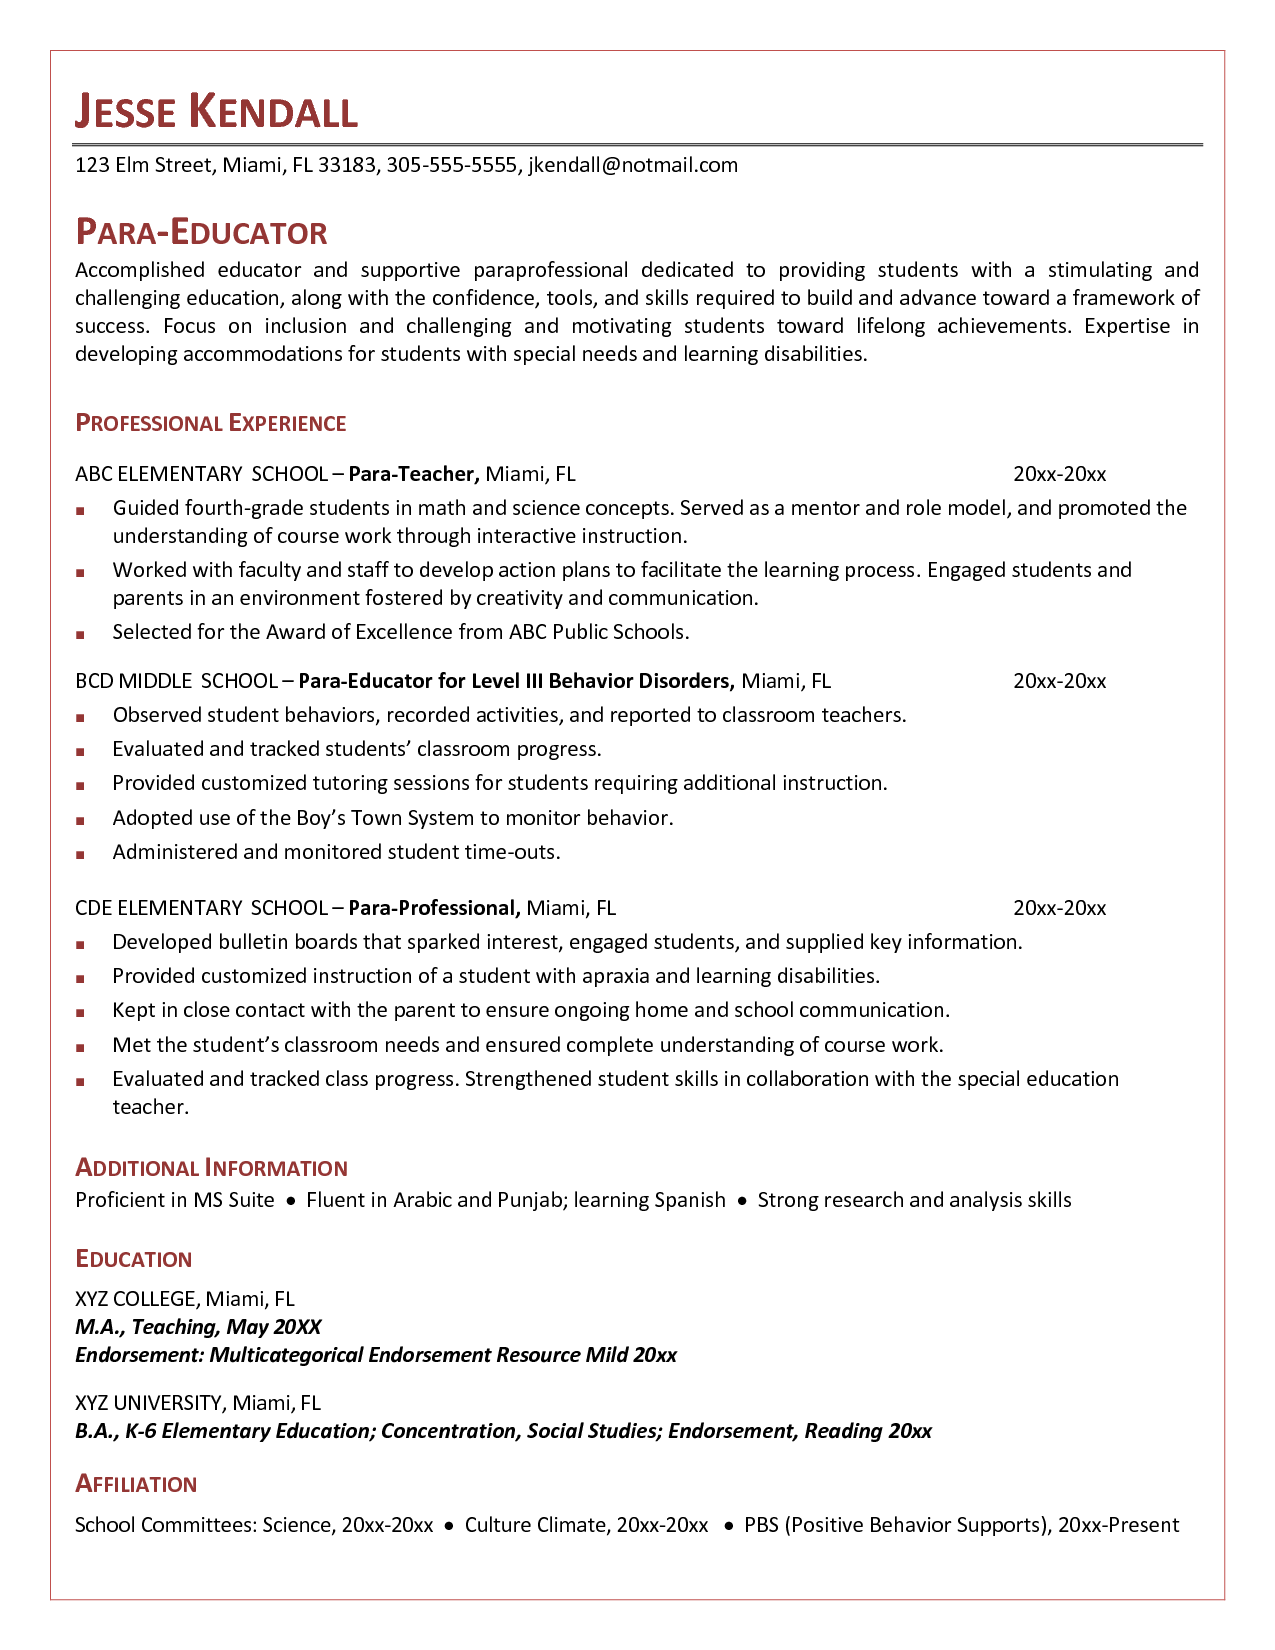 Cover Letter For Paraeducator Example   Http://www.resumecareer.info/cover  Letter For Paraeducator Example 17/